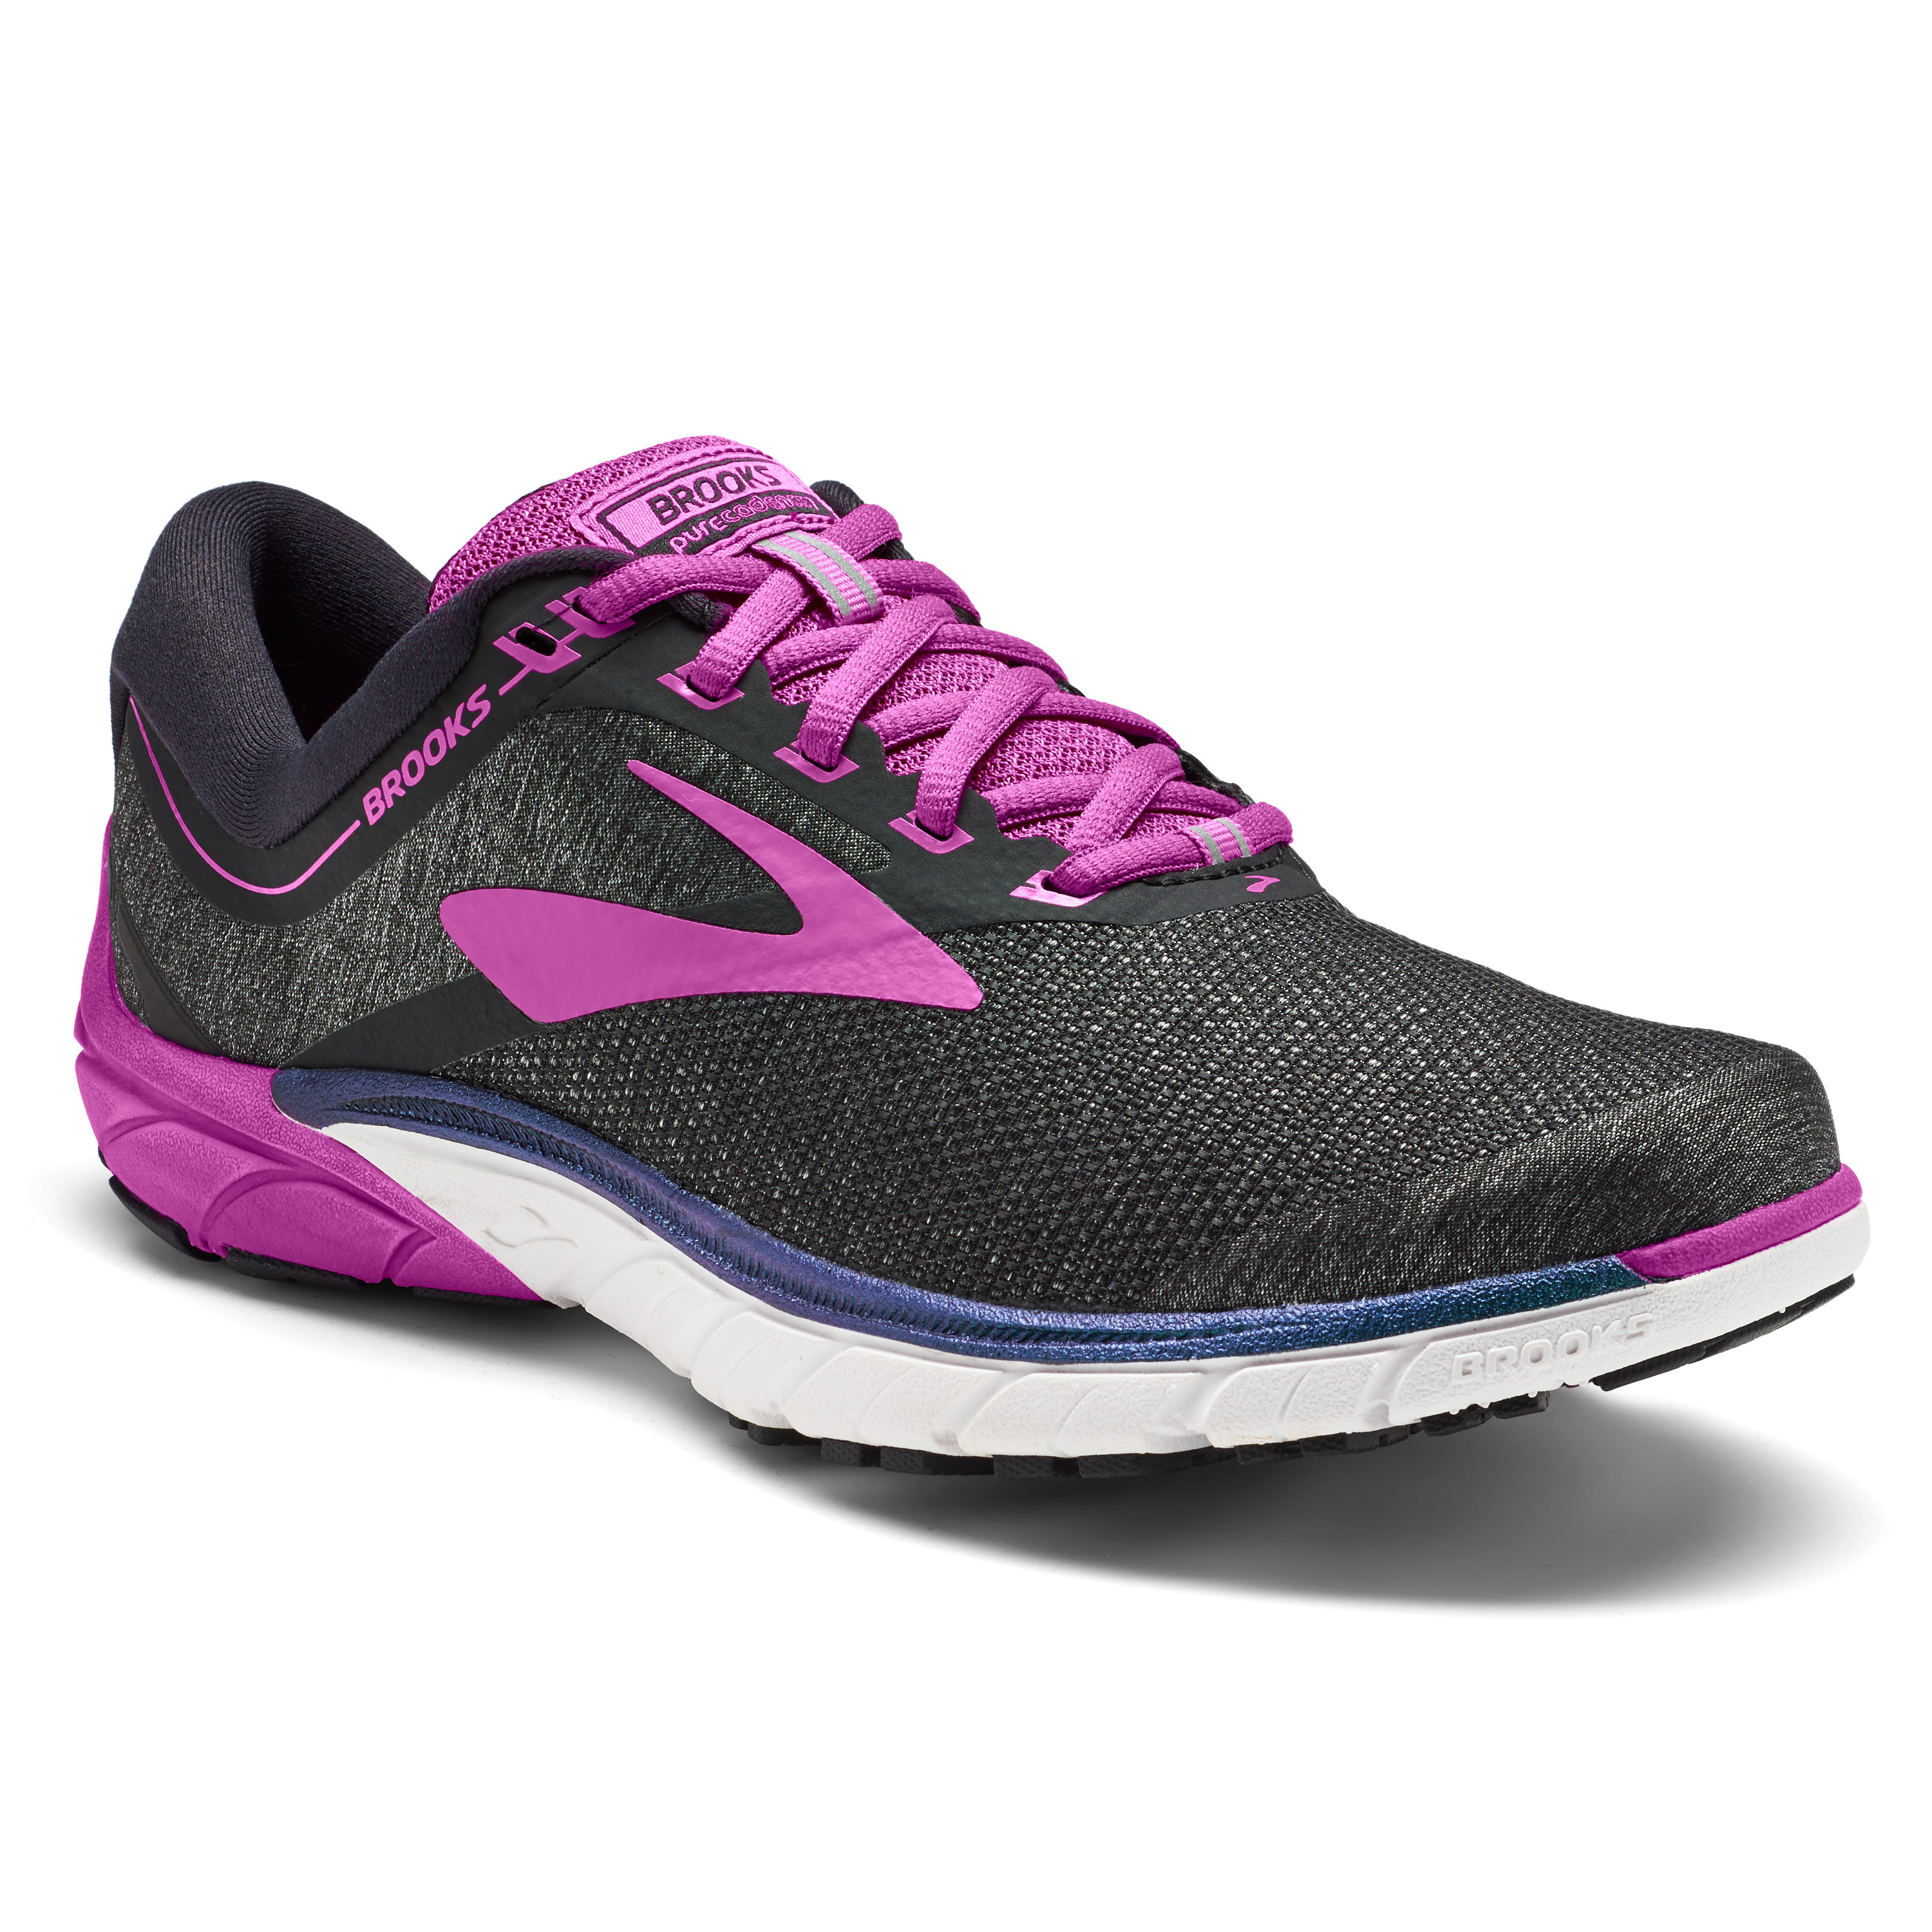 Brooks PureCadence 7 Road Running Shoe - Women s 1e1de8689f4